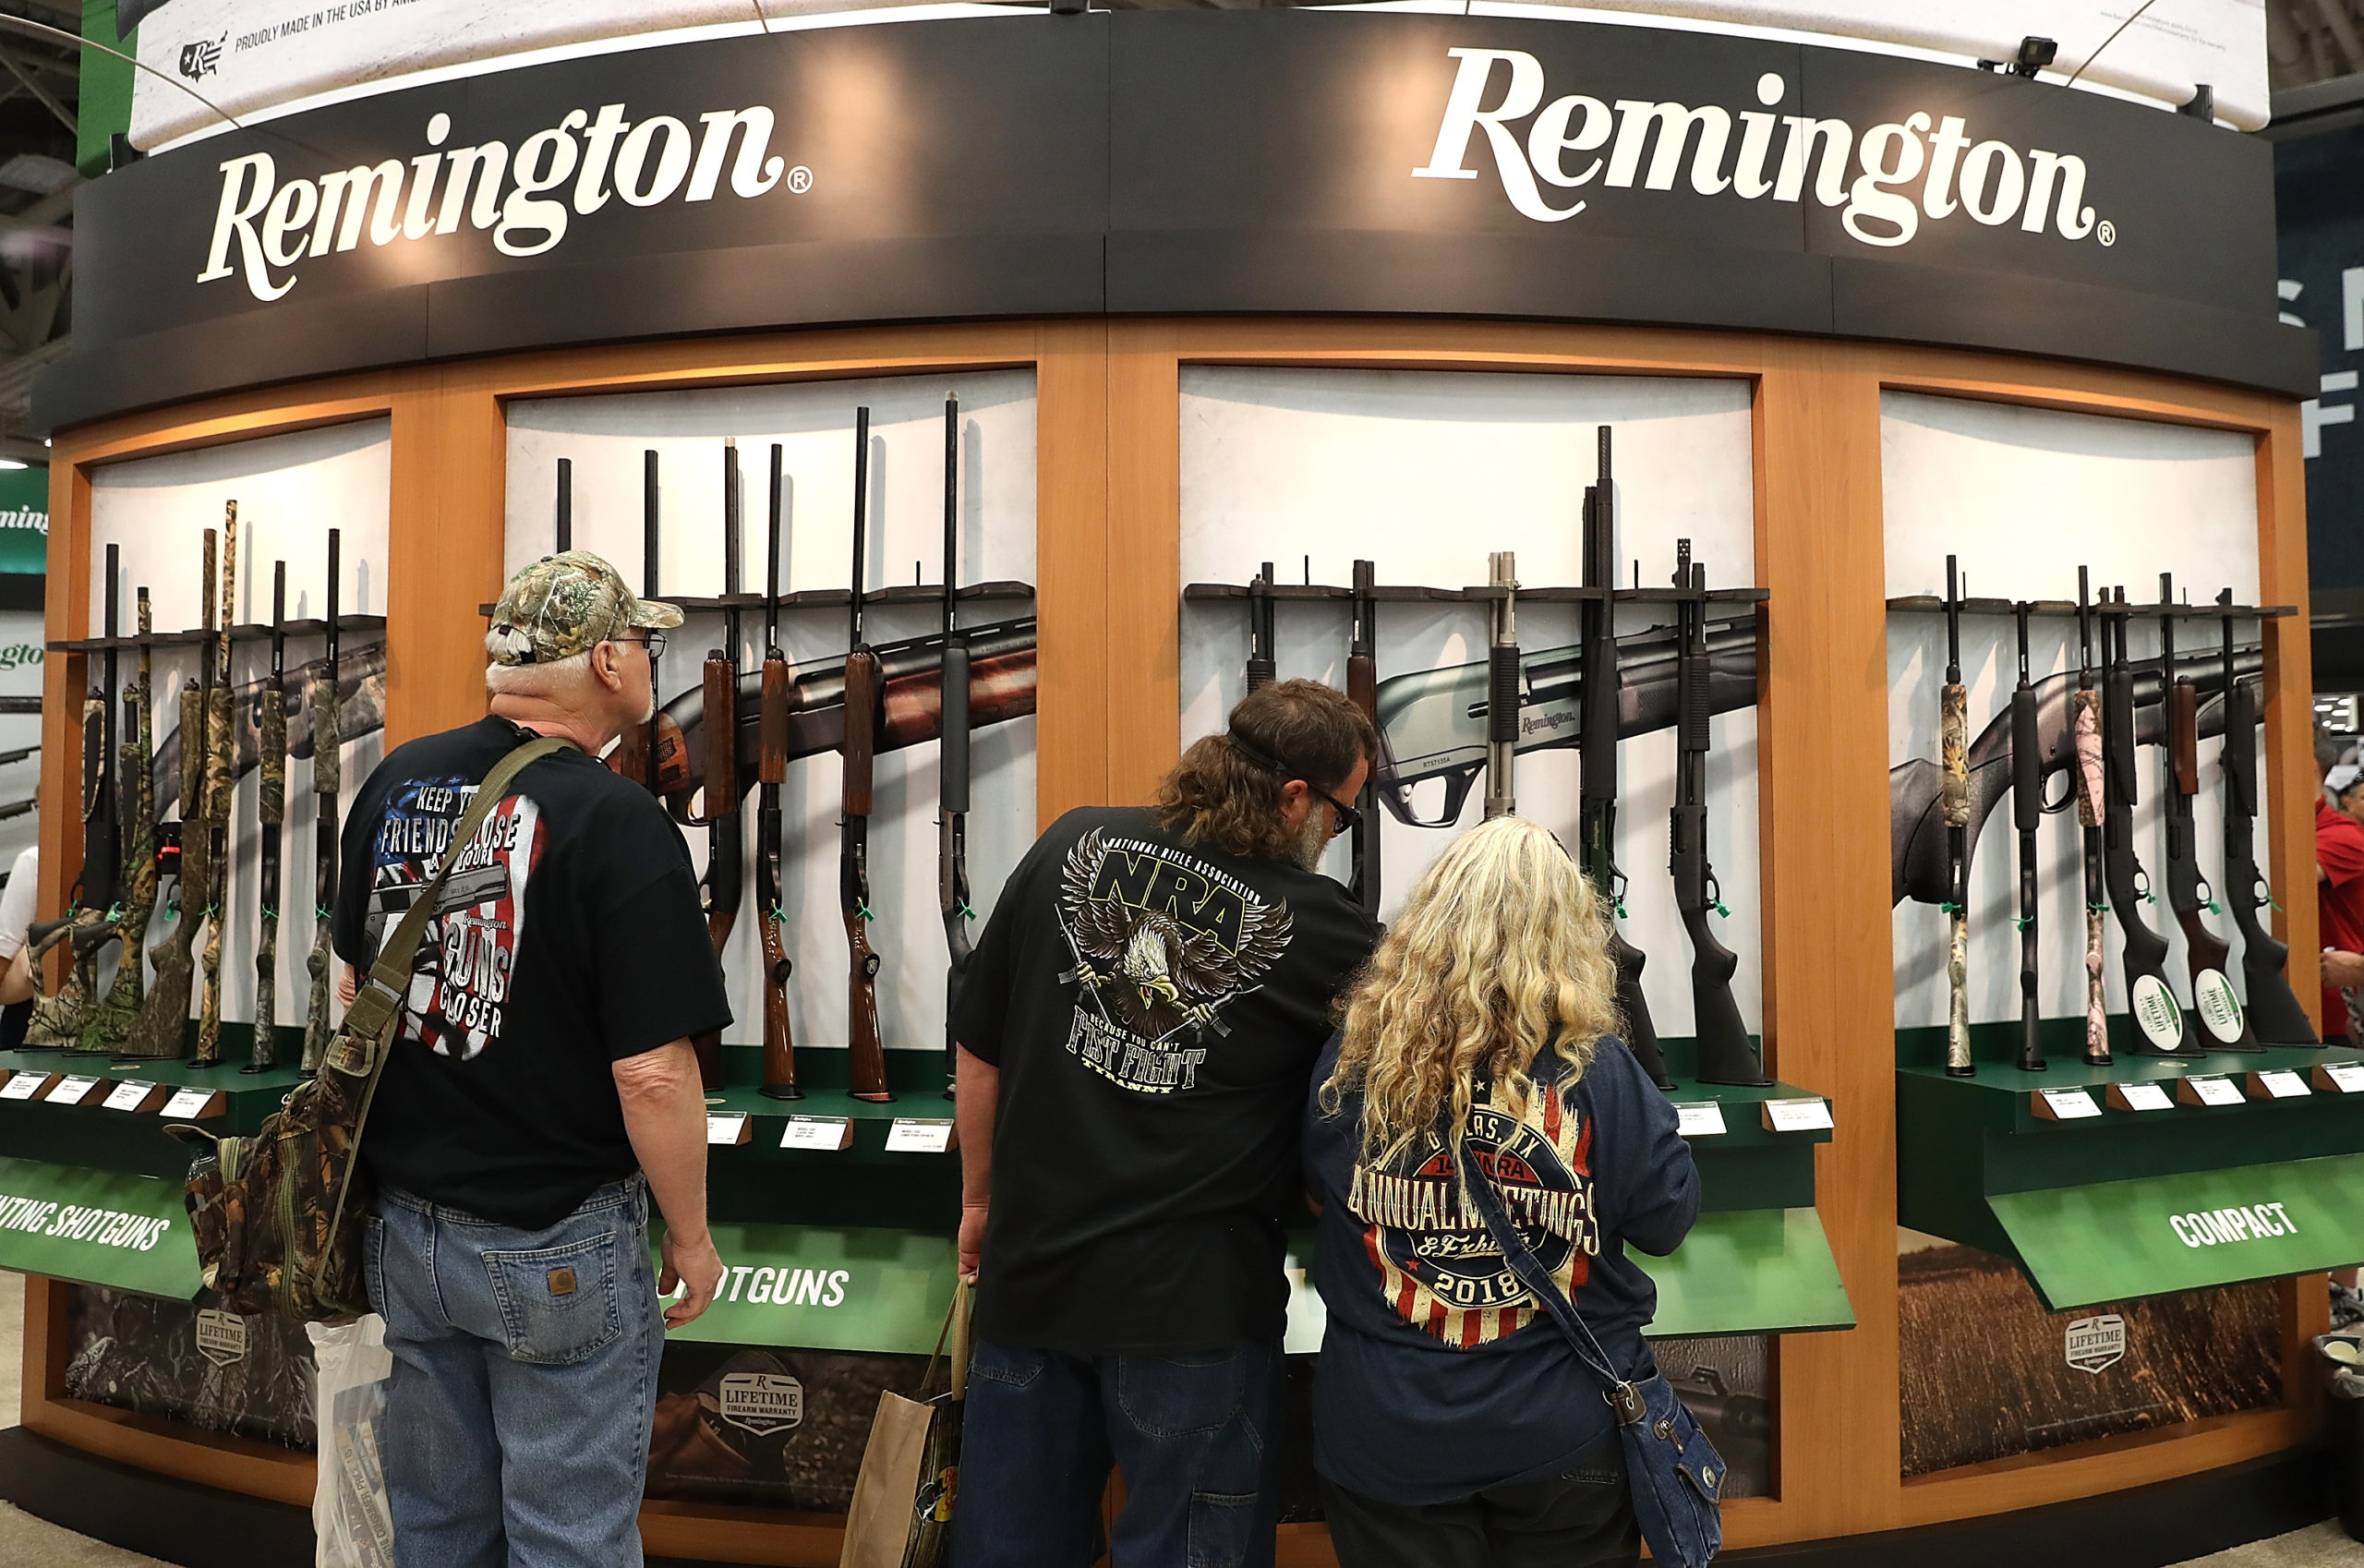 DALLAS, TX - MAY 05: Attendees look at a display of Remington shotguns during the NRA Annual Meeting & Exhibits at the Kay Bailey Hutchison Convention Center on May 5, 2018 in Dallas, Texas. The National Rifle Association's annual meeting and exhibit runs through Sunday. (Justin Sullivan/Getty Images)